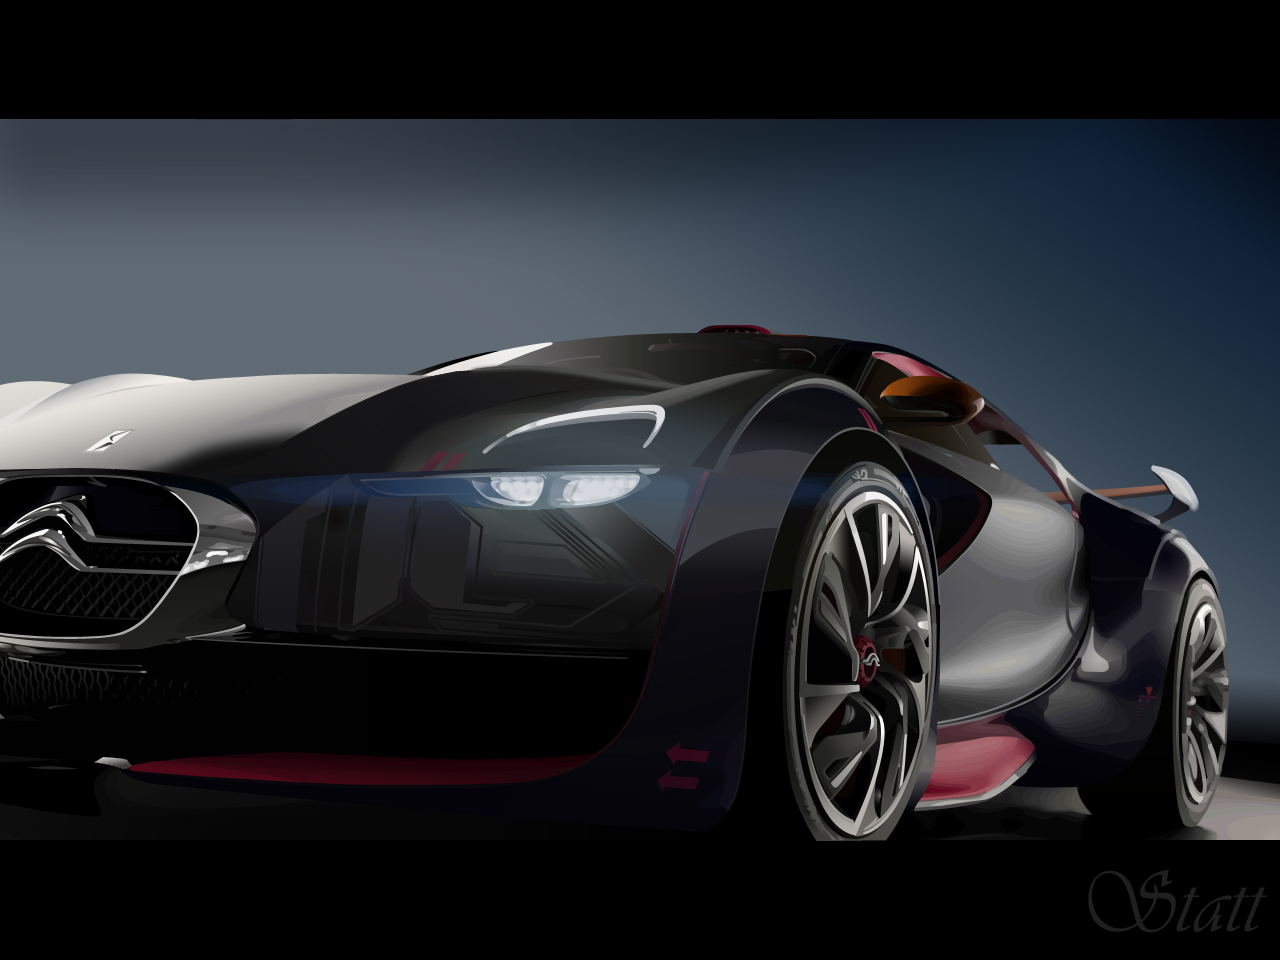 Citroen Survolt Concept 2010 by Statt